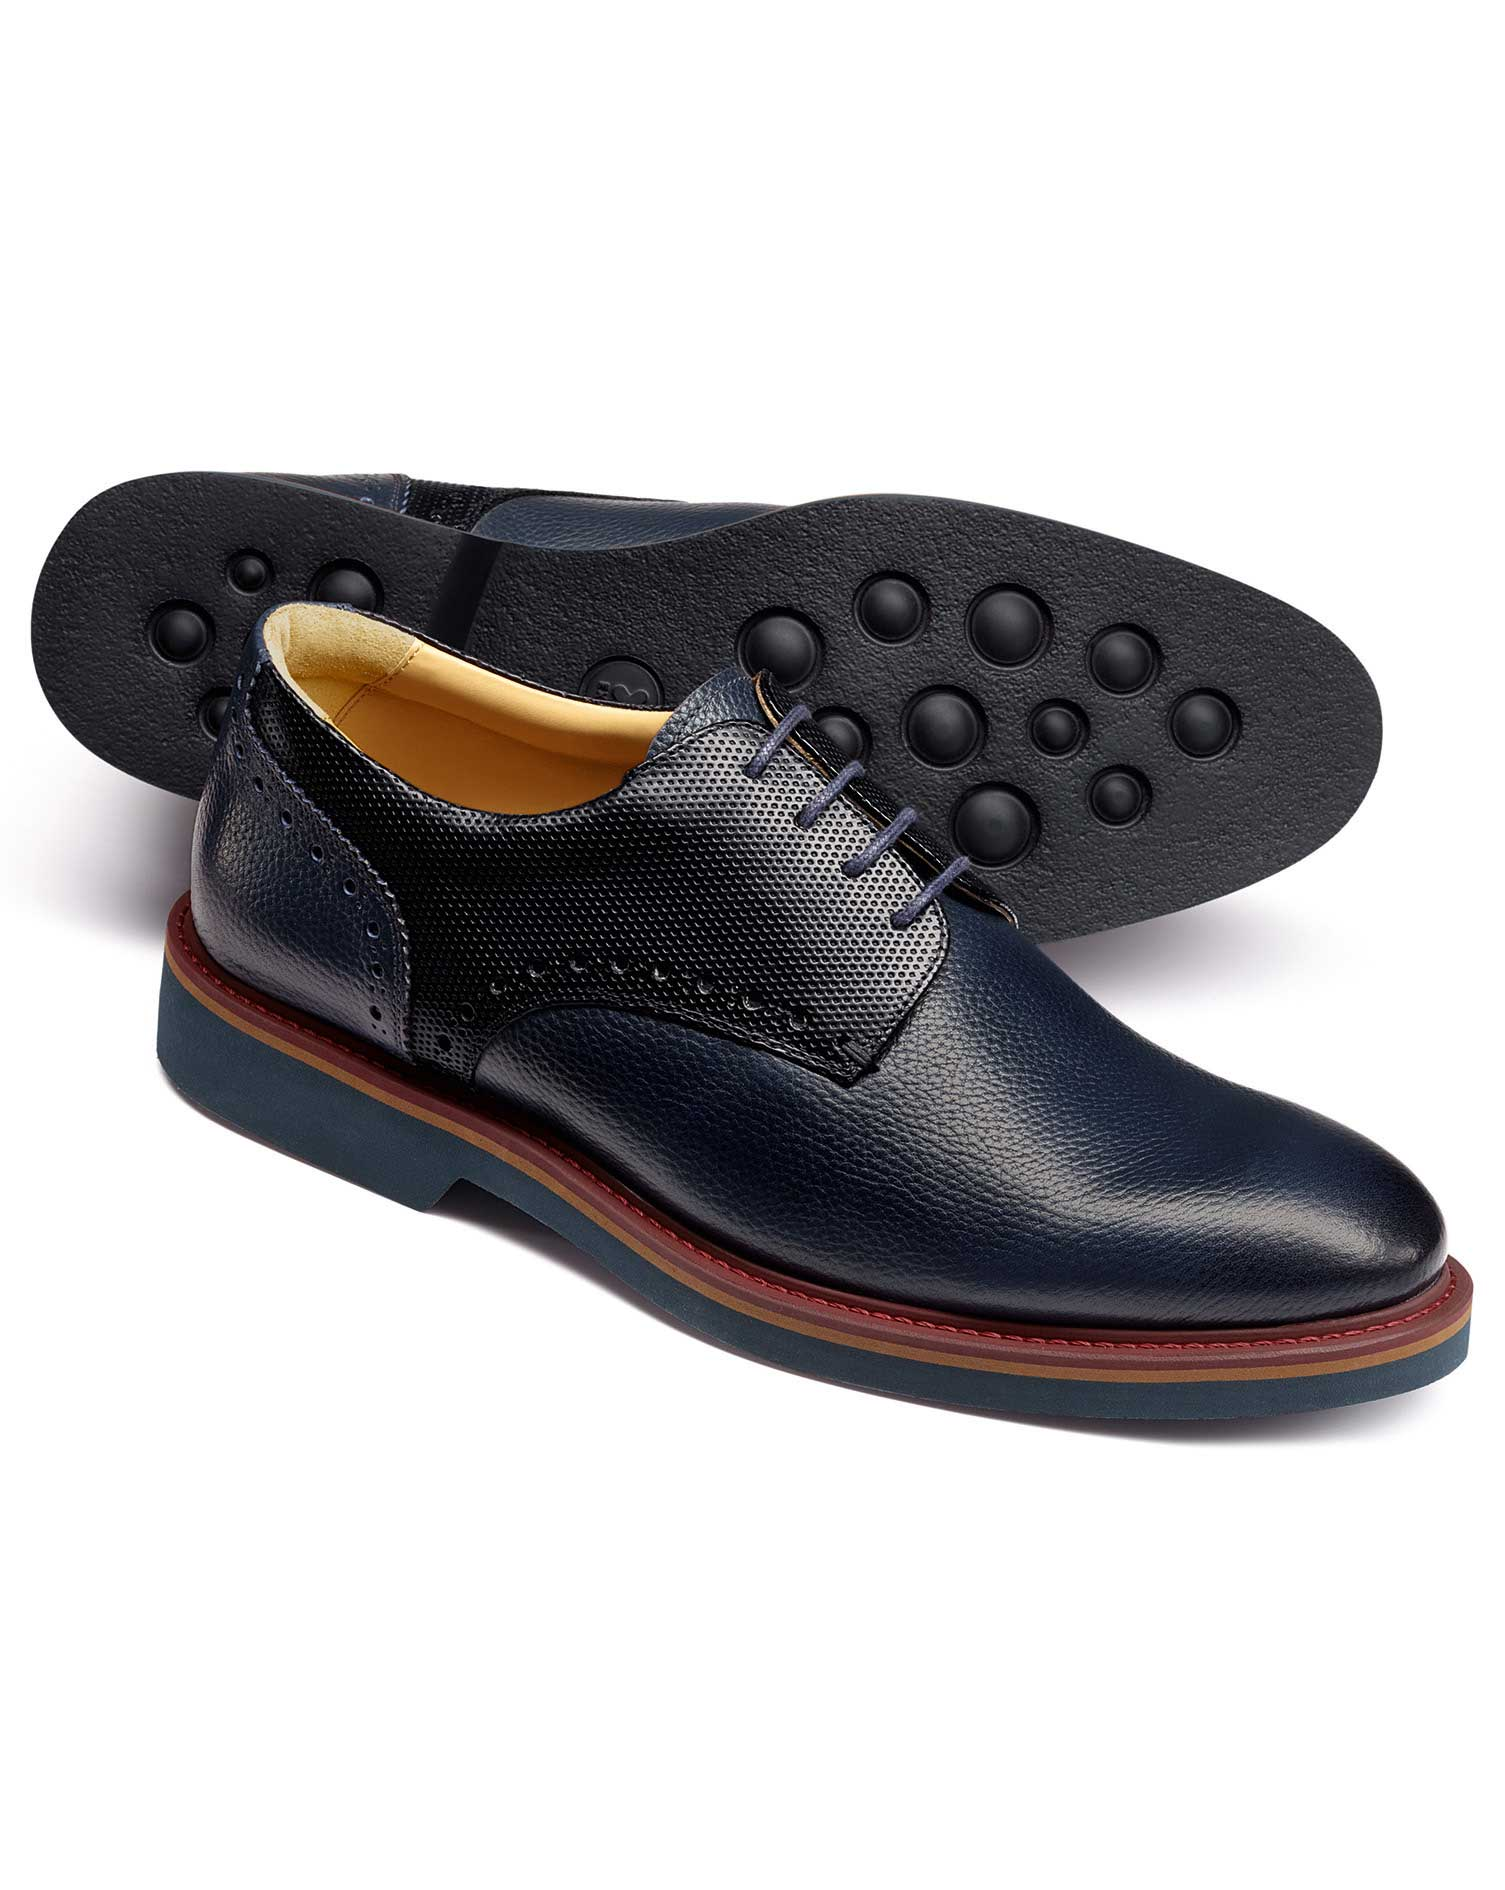 Navy Extra Lightweight Derby Shoes Size 8.5 R by Charles Tyrwhitt